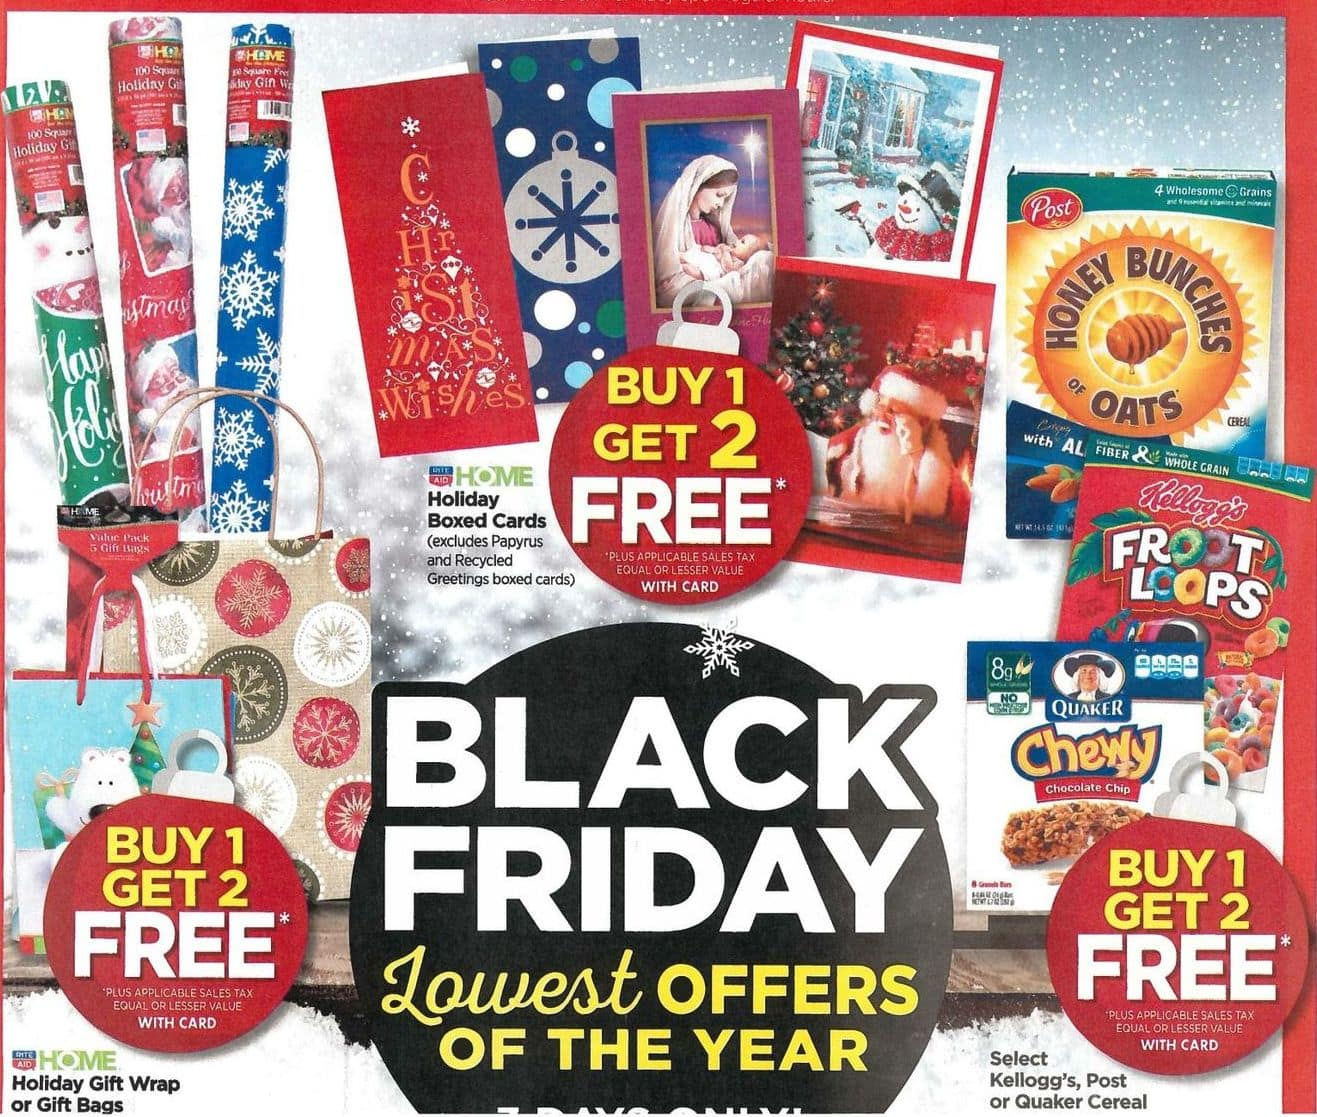 Rite Aid Black Friday: Kellogg's Chewy Bars, Quaker Chewy Bars or Other Select Chewy Bars - B1G2 Free